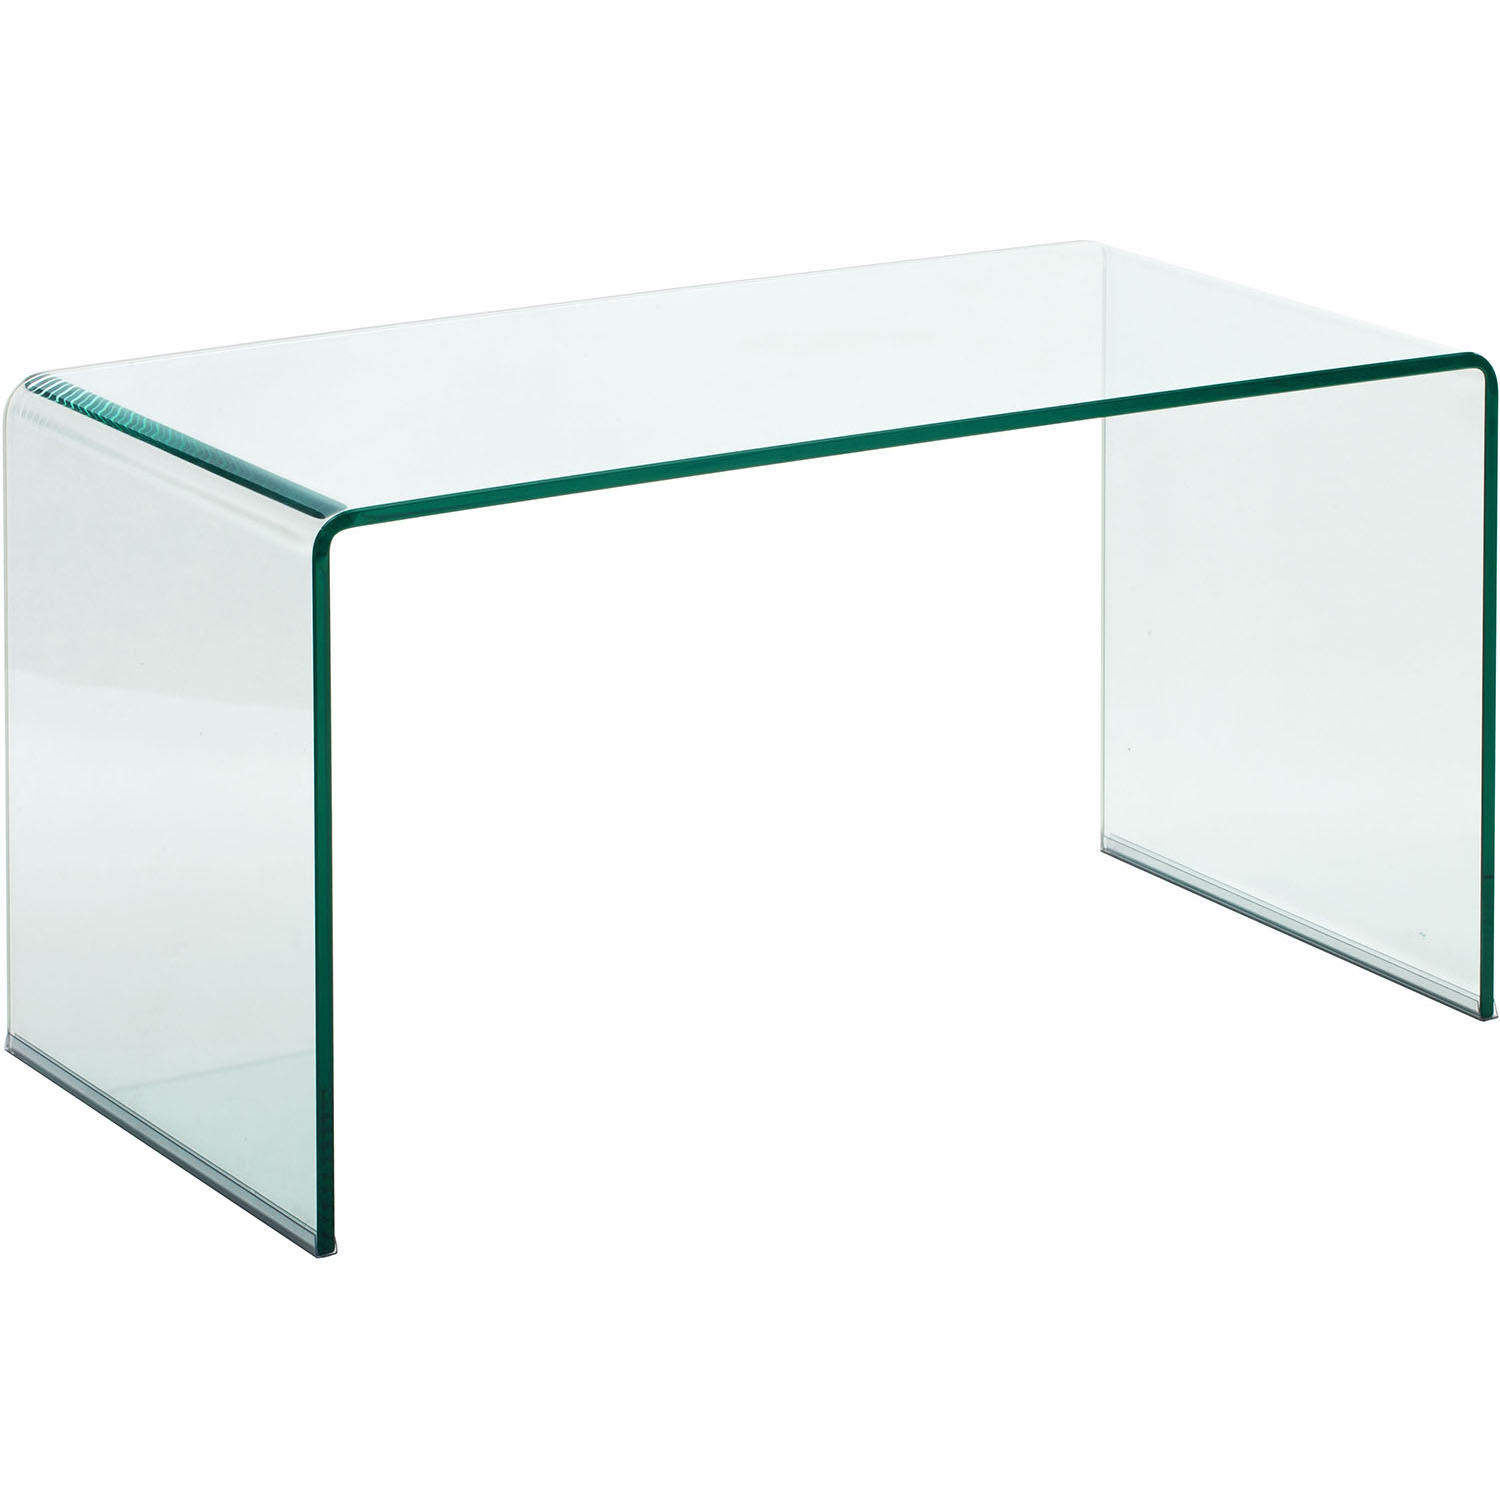 Modern Course Coffee Table: Clear